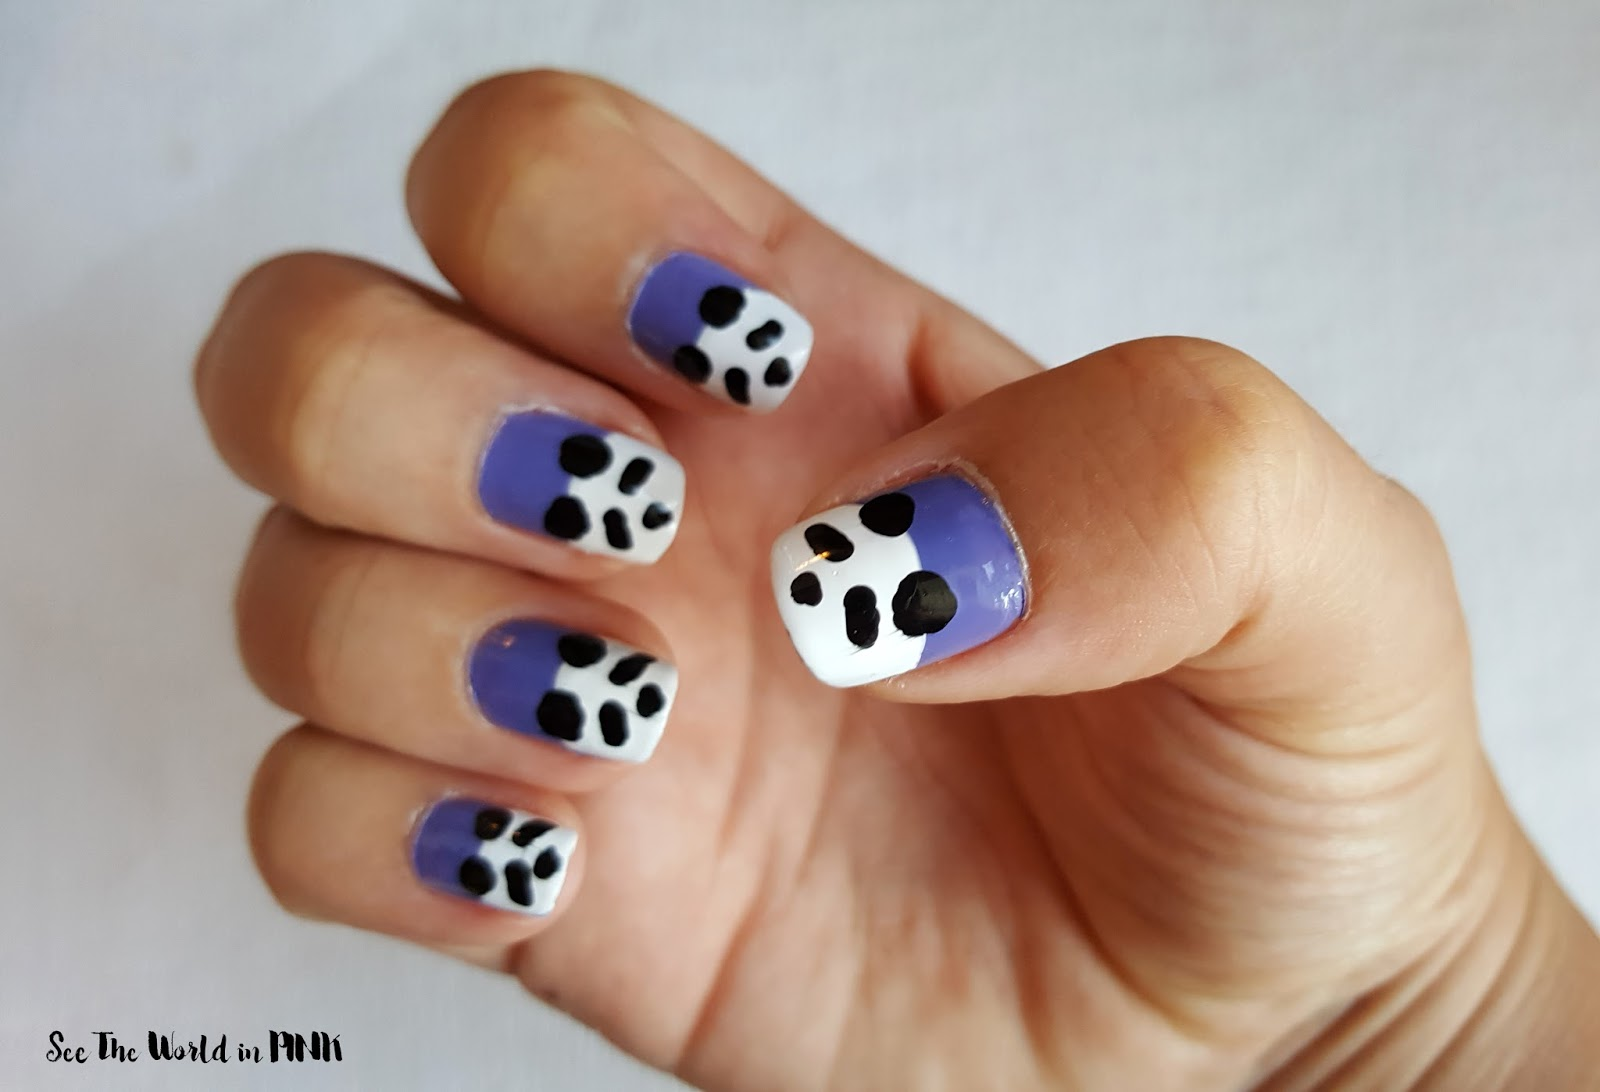 Manicure monday best recent nail art looks see the world in pink eeeek how cute are these little pandas i love how they turned out especially the thumb and they were surprisingly easy to do prinsesfo Images